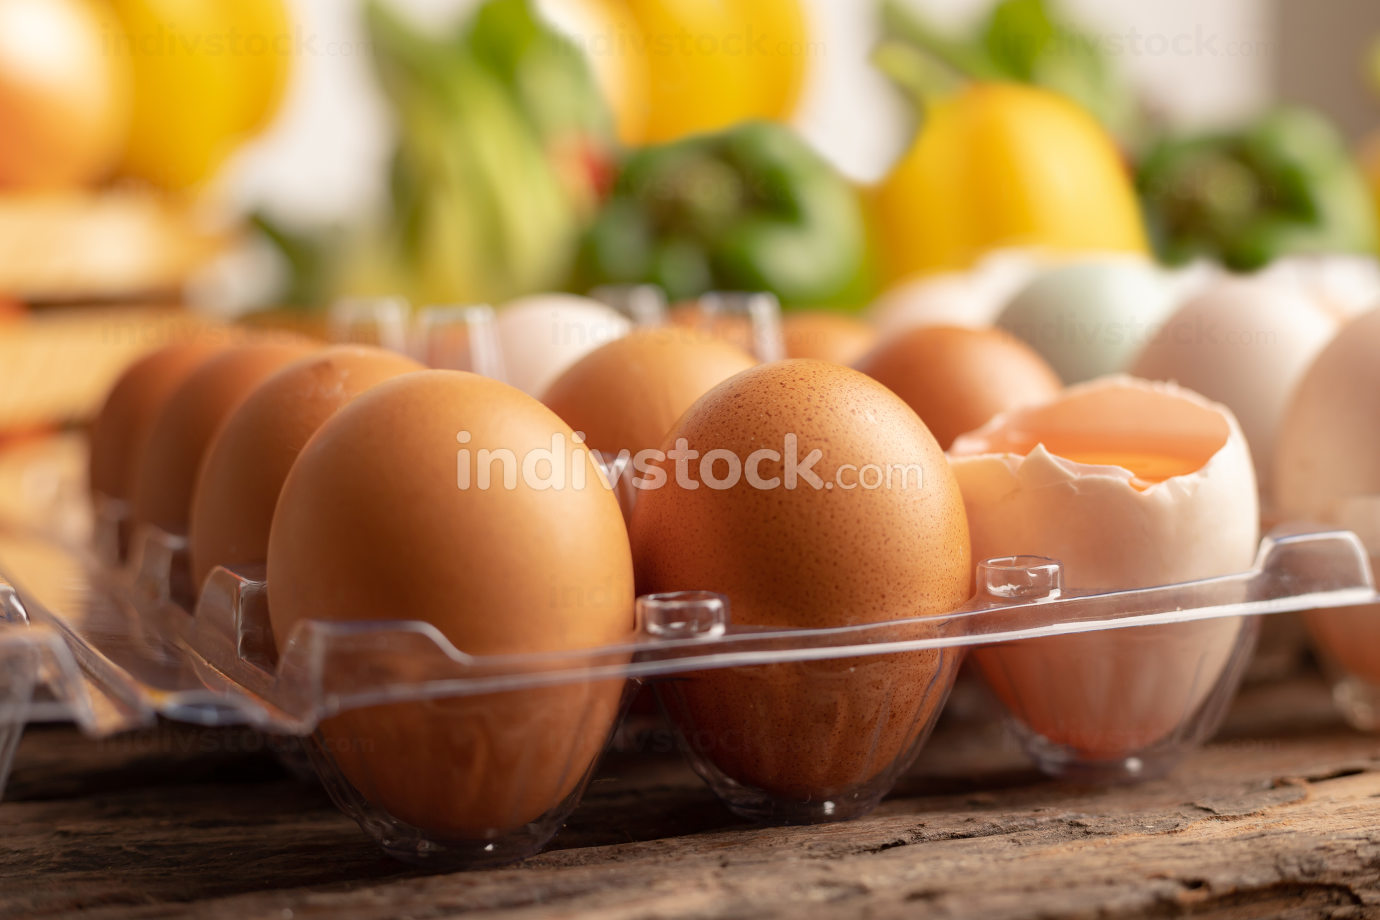 eggs of chicken placed on a wooden table with various vegetables